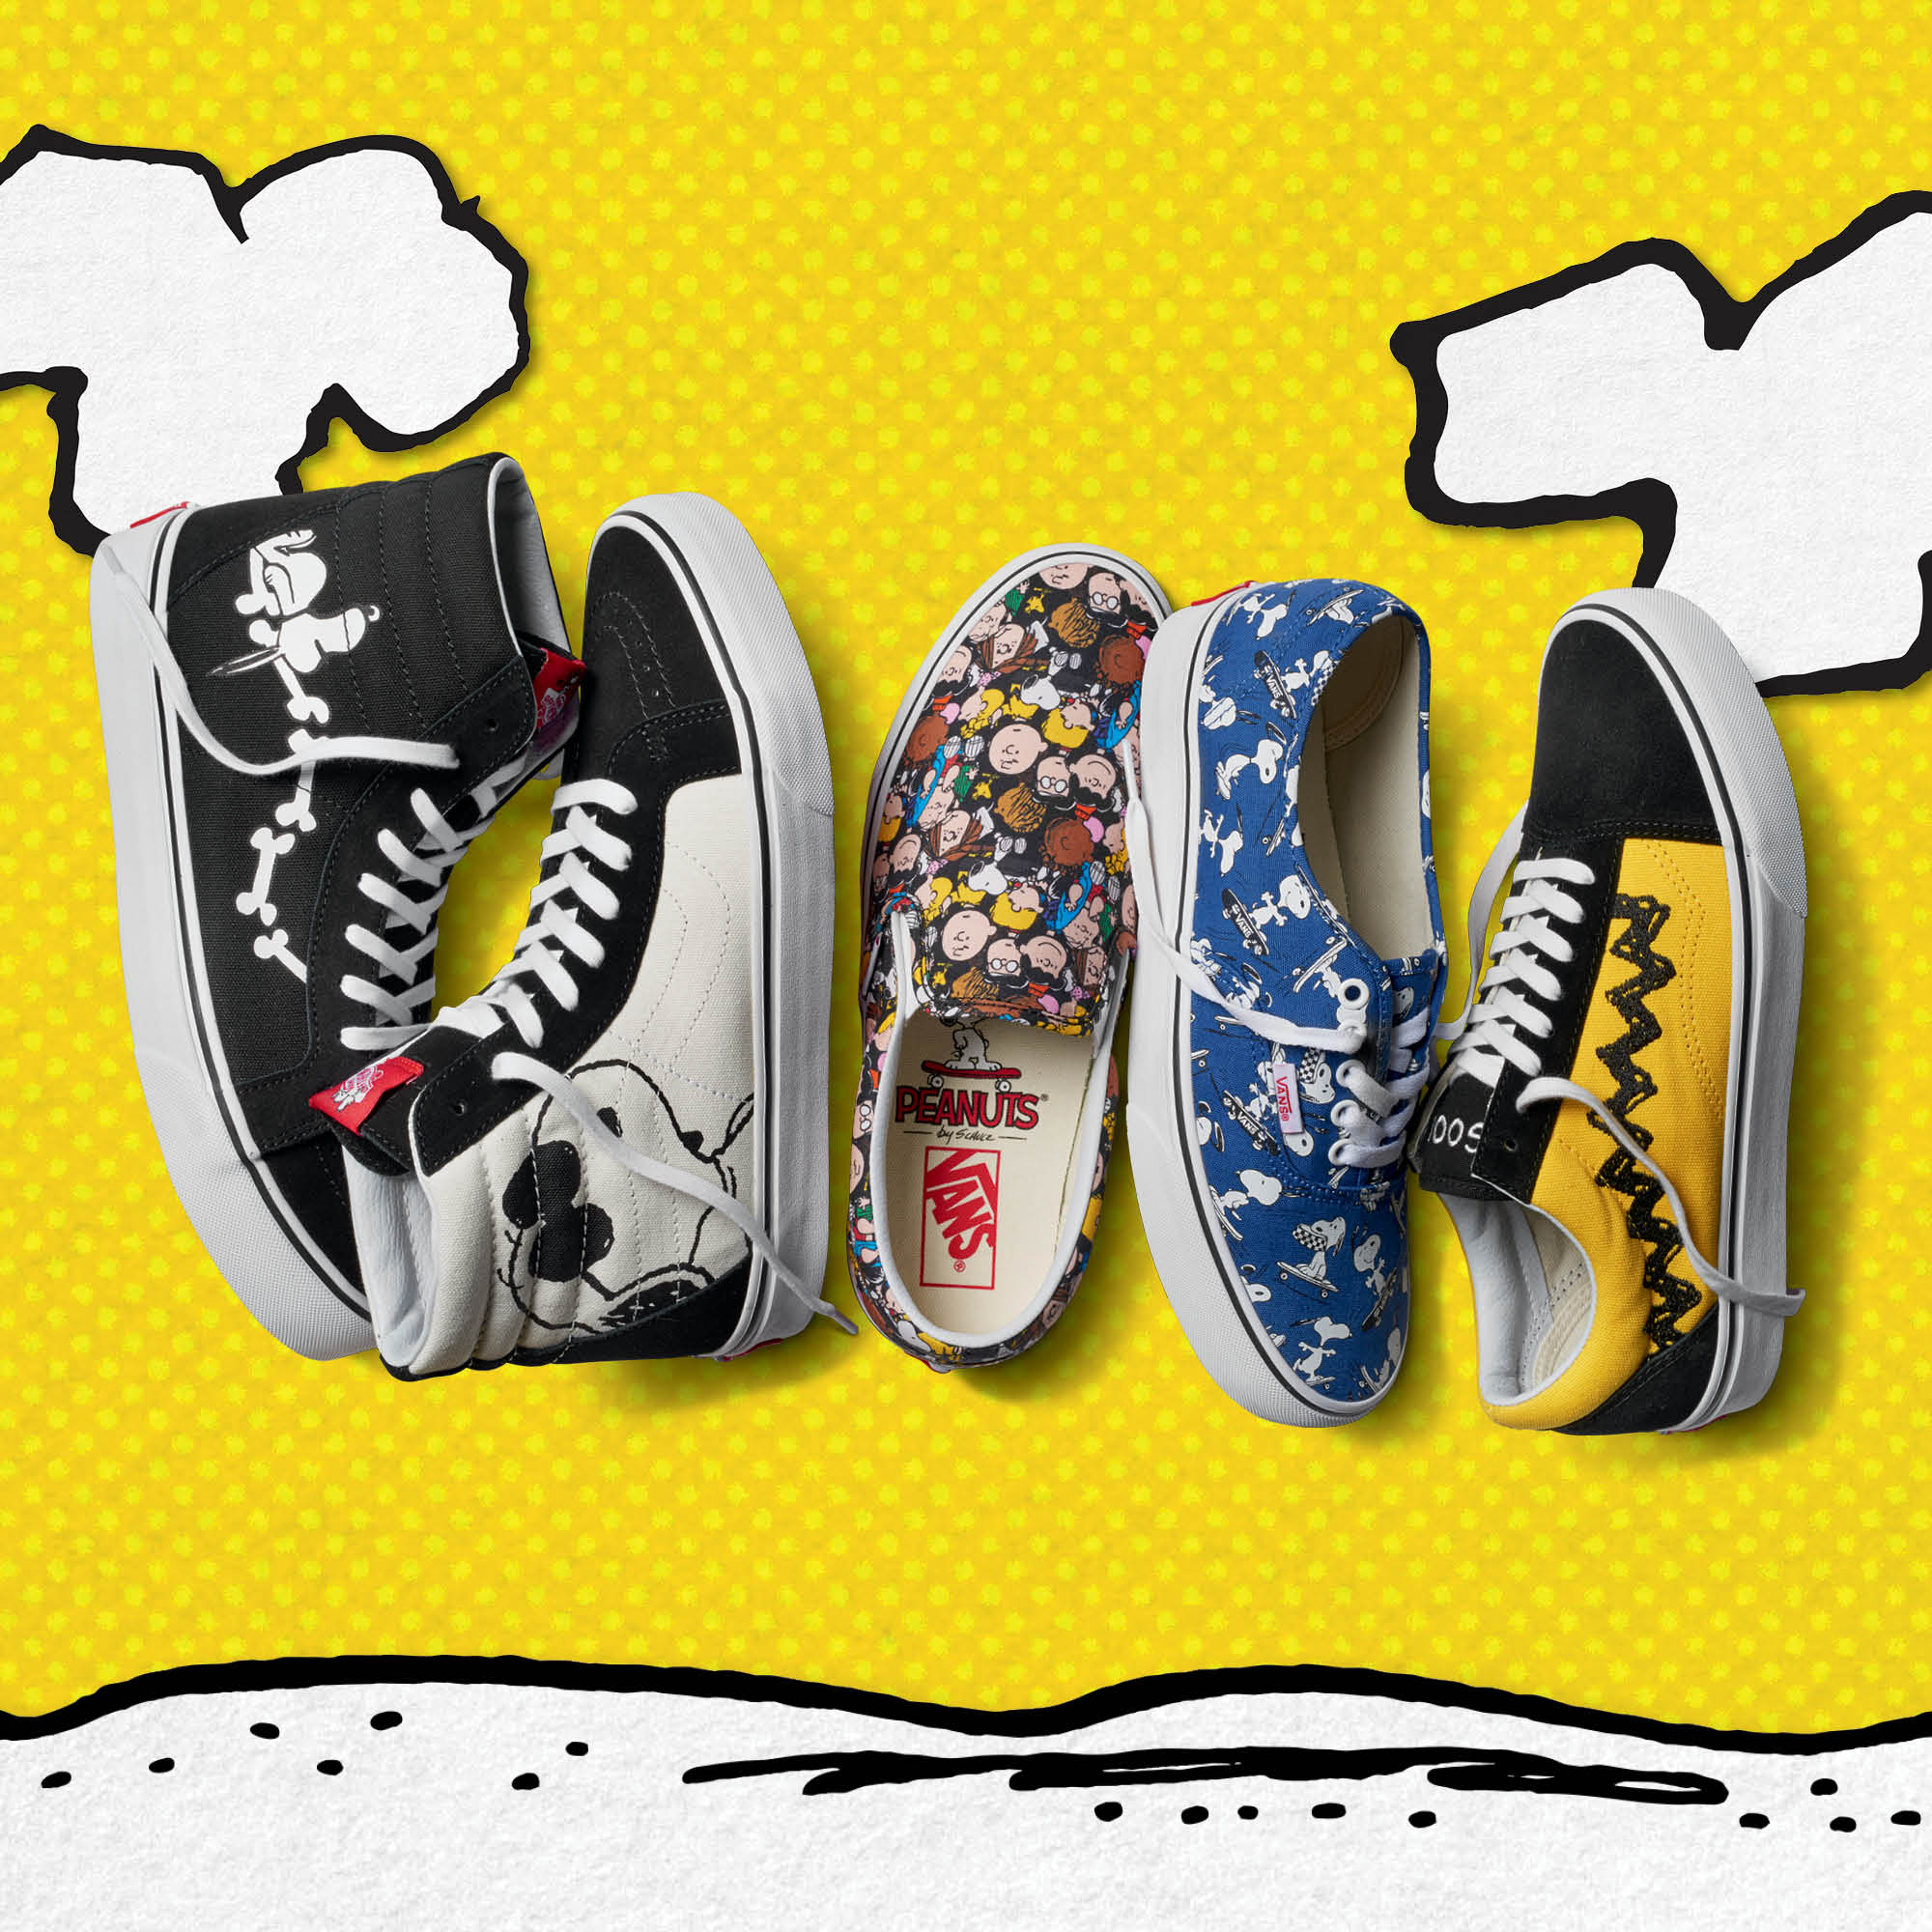 Vans releases nostalgic Capsule Collection featuring the Peanuts Gang